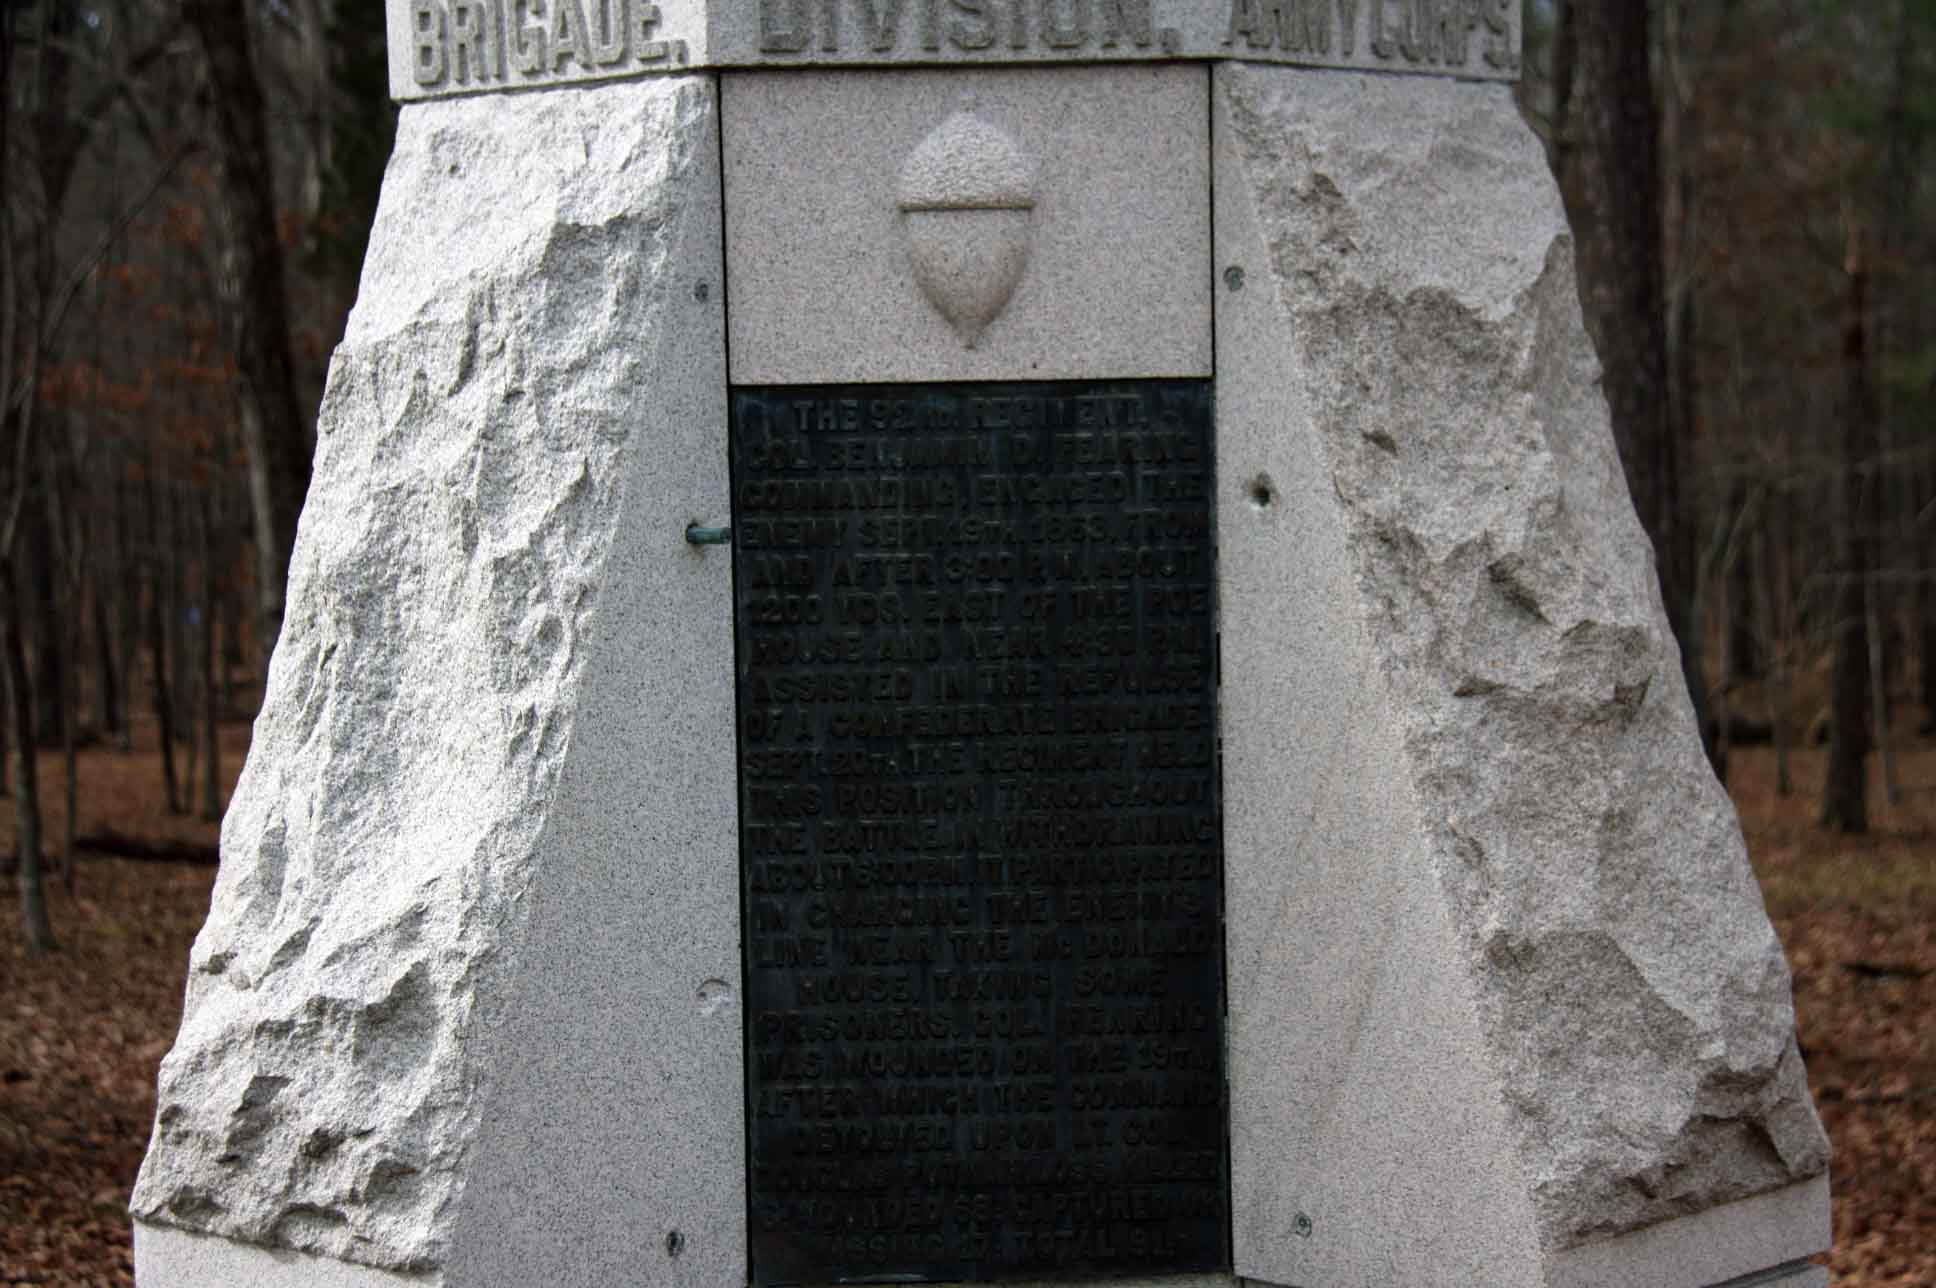 92nd Ohio Infantry Monument, click photo to enlarge.